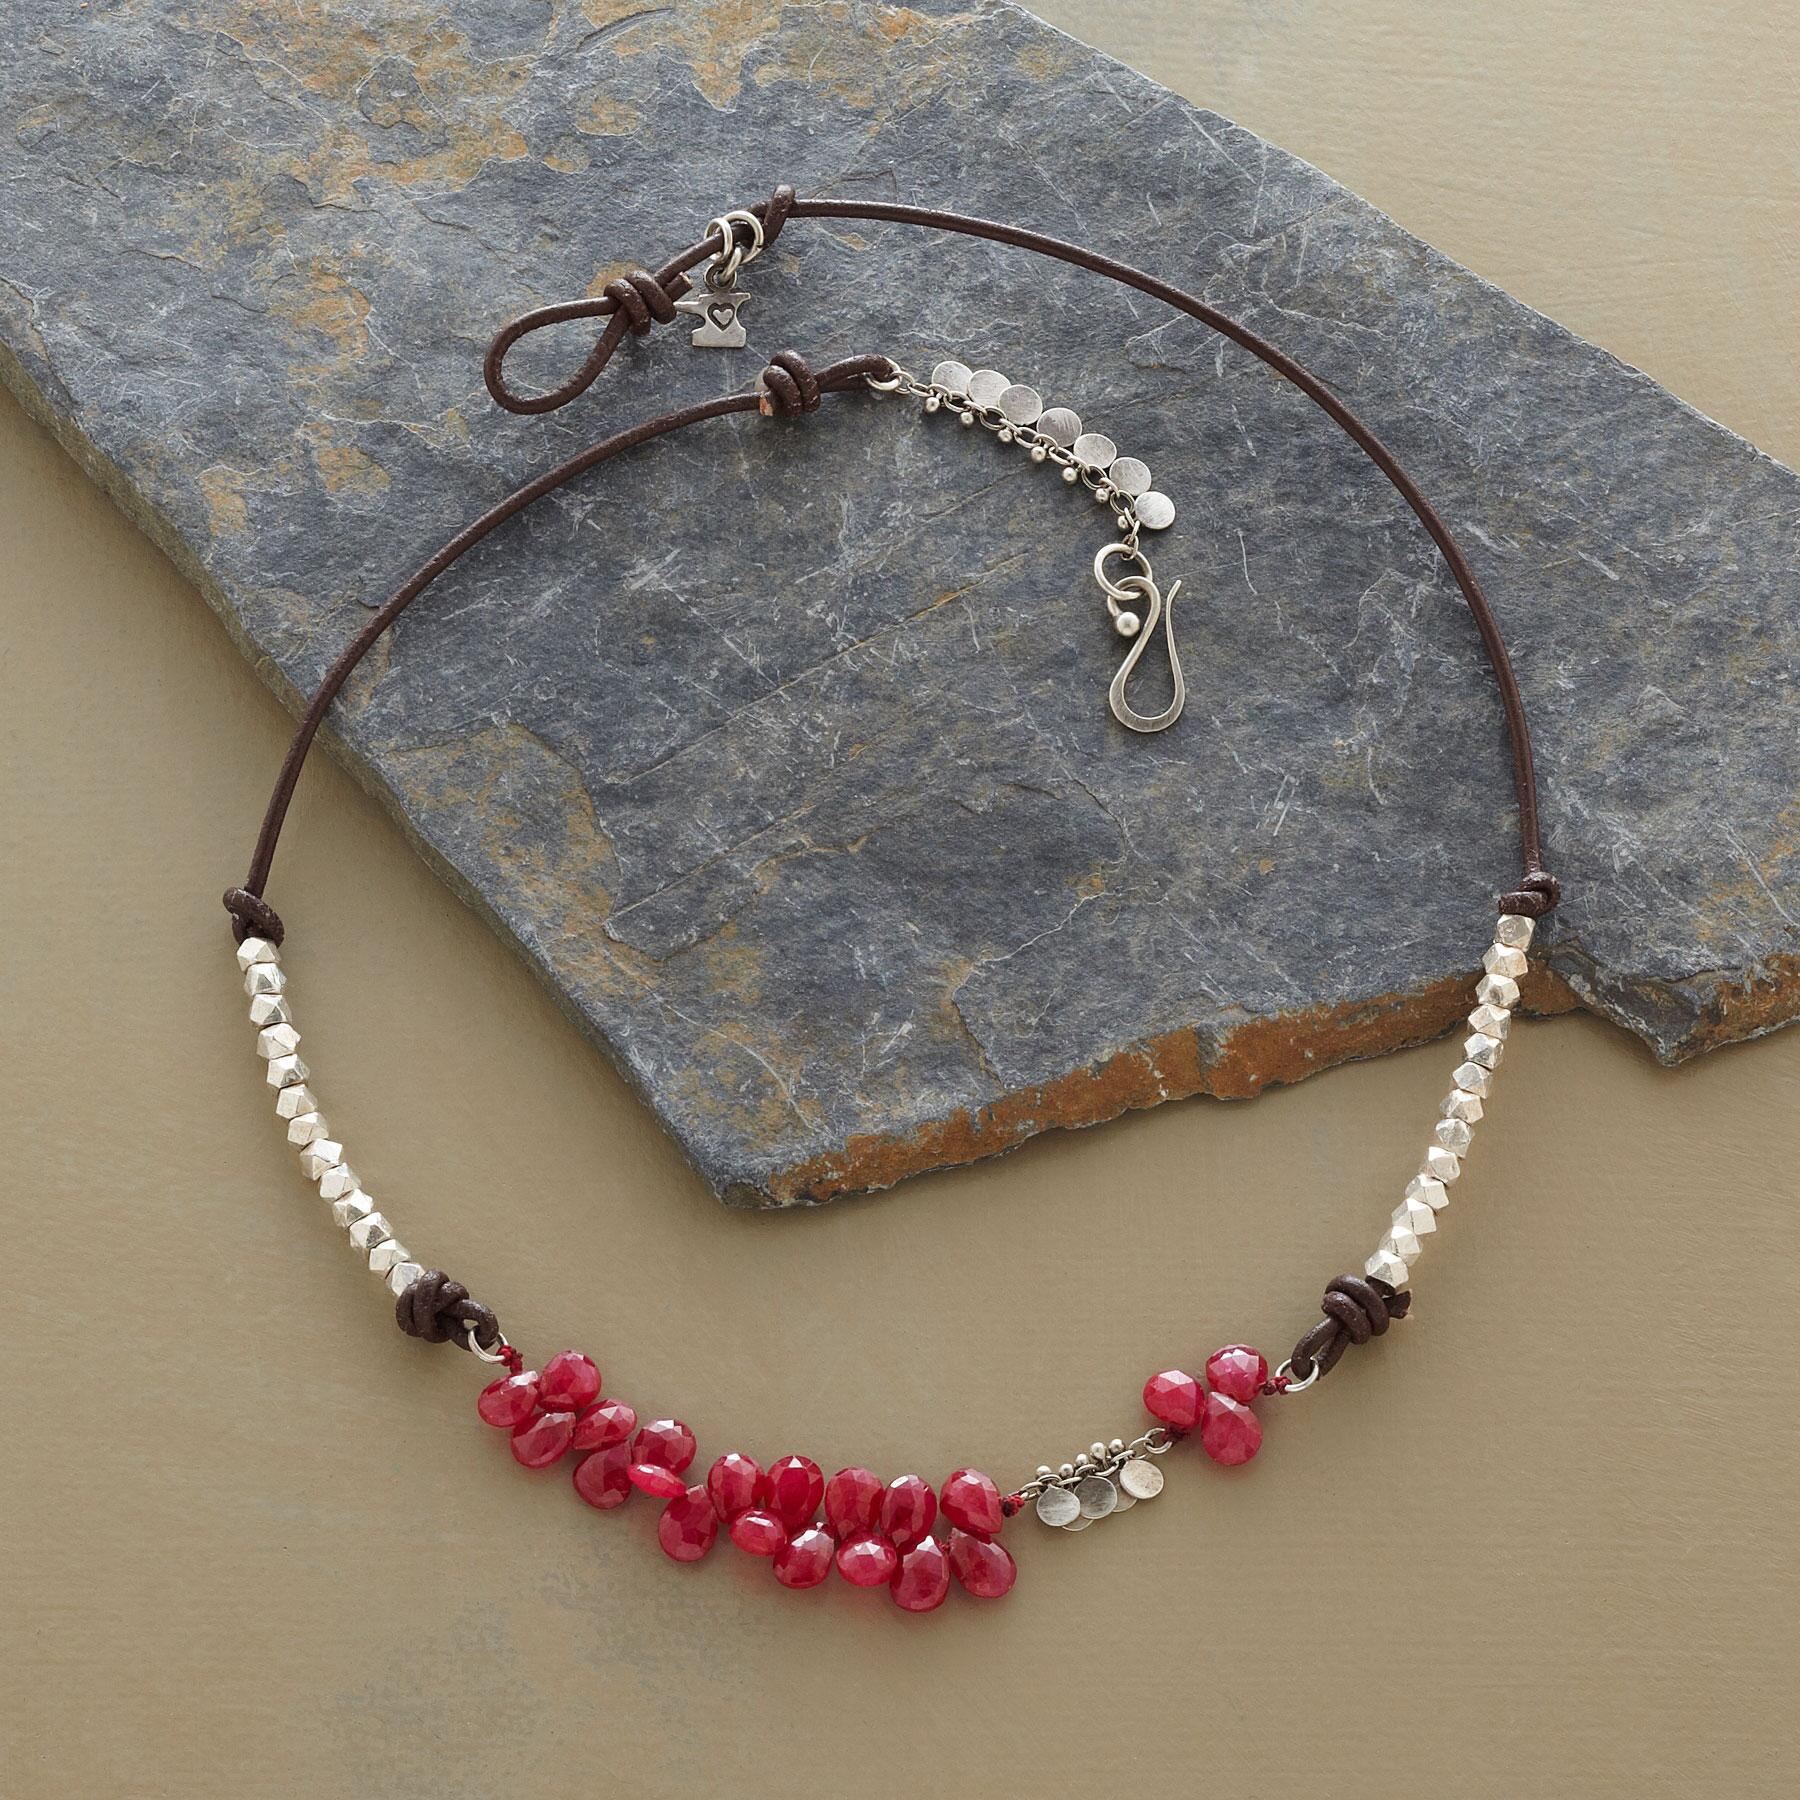 RUBIES AND MORE NECKLACE: View 2